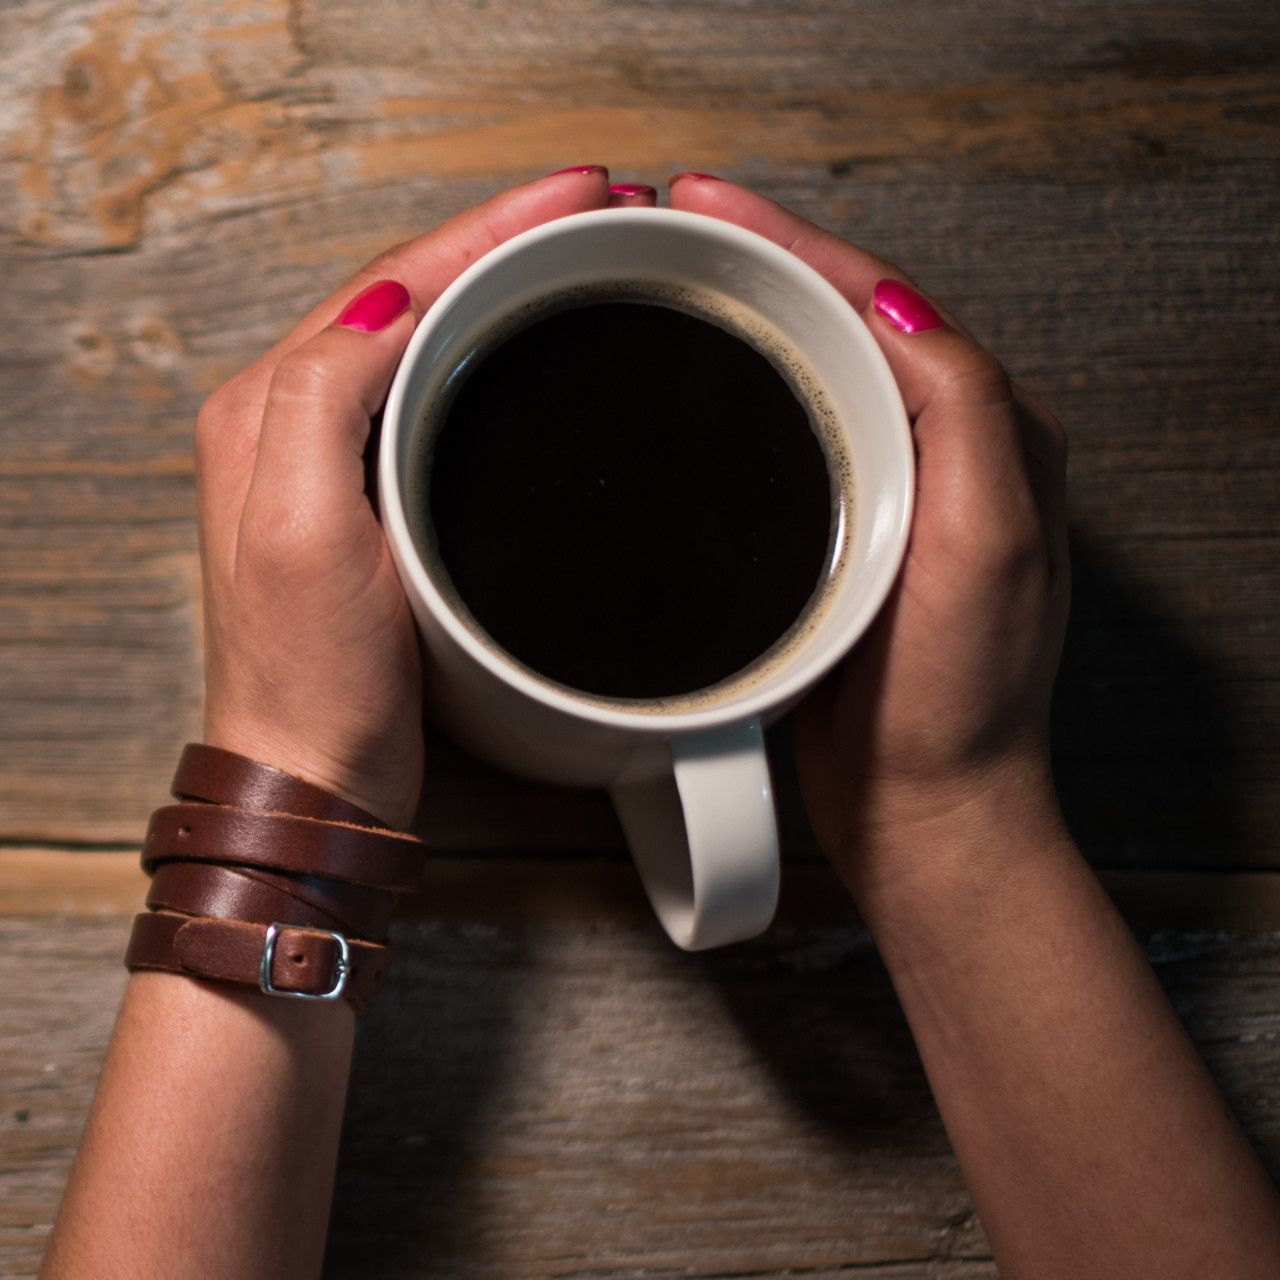 leather wrap bracelet in chestnut leather placed on hands with a cup of coffee